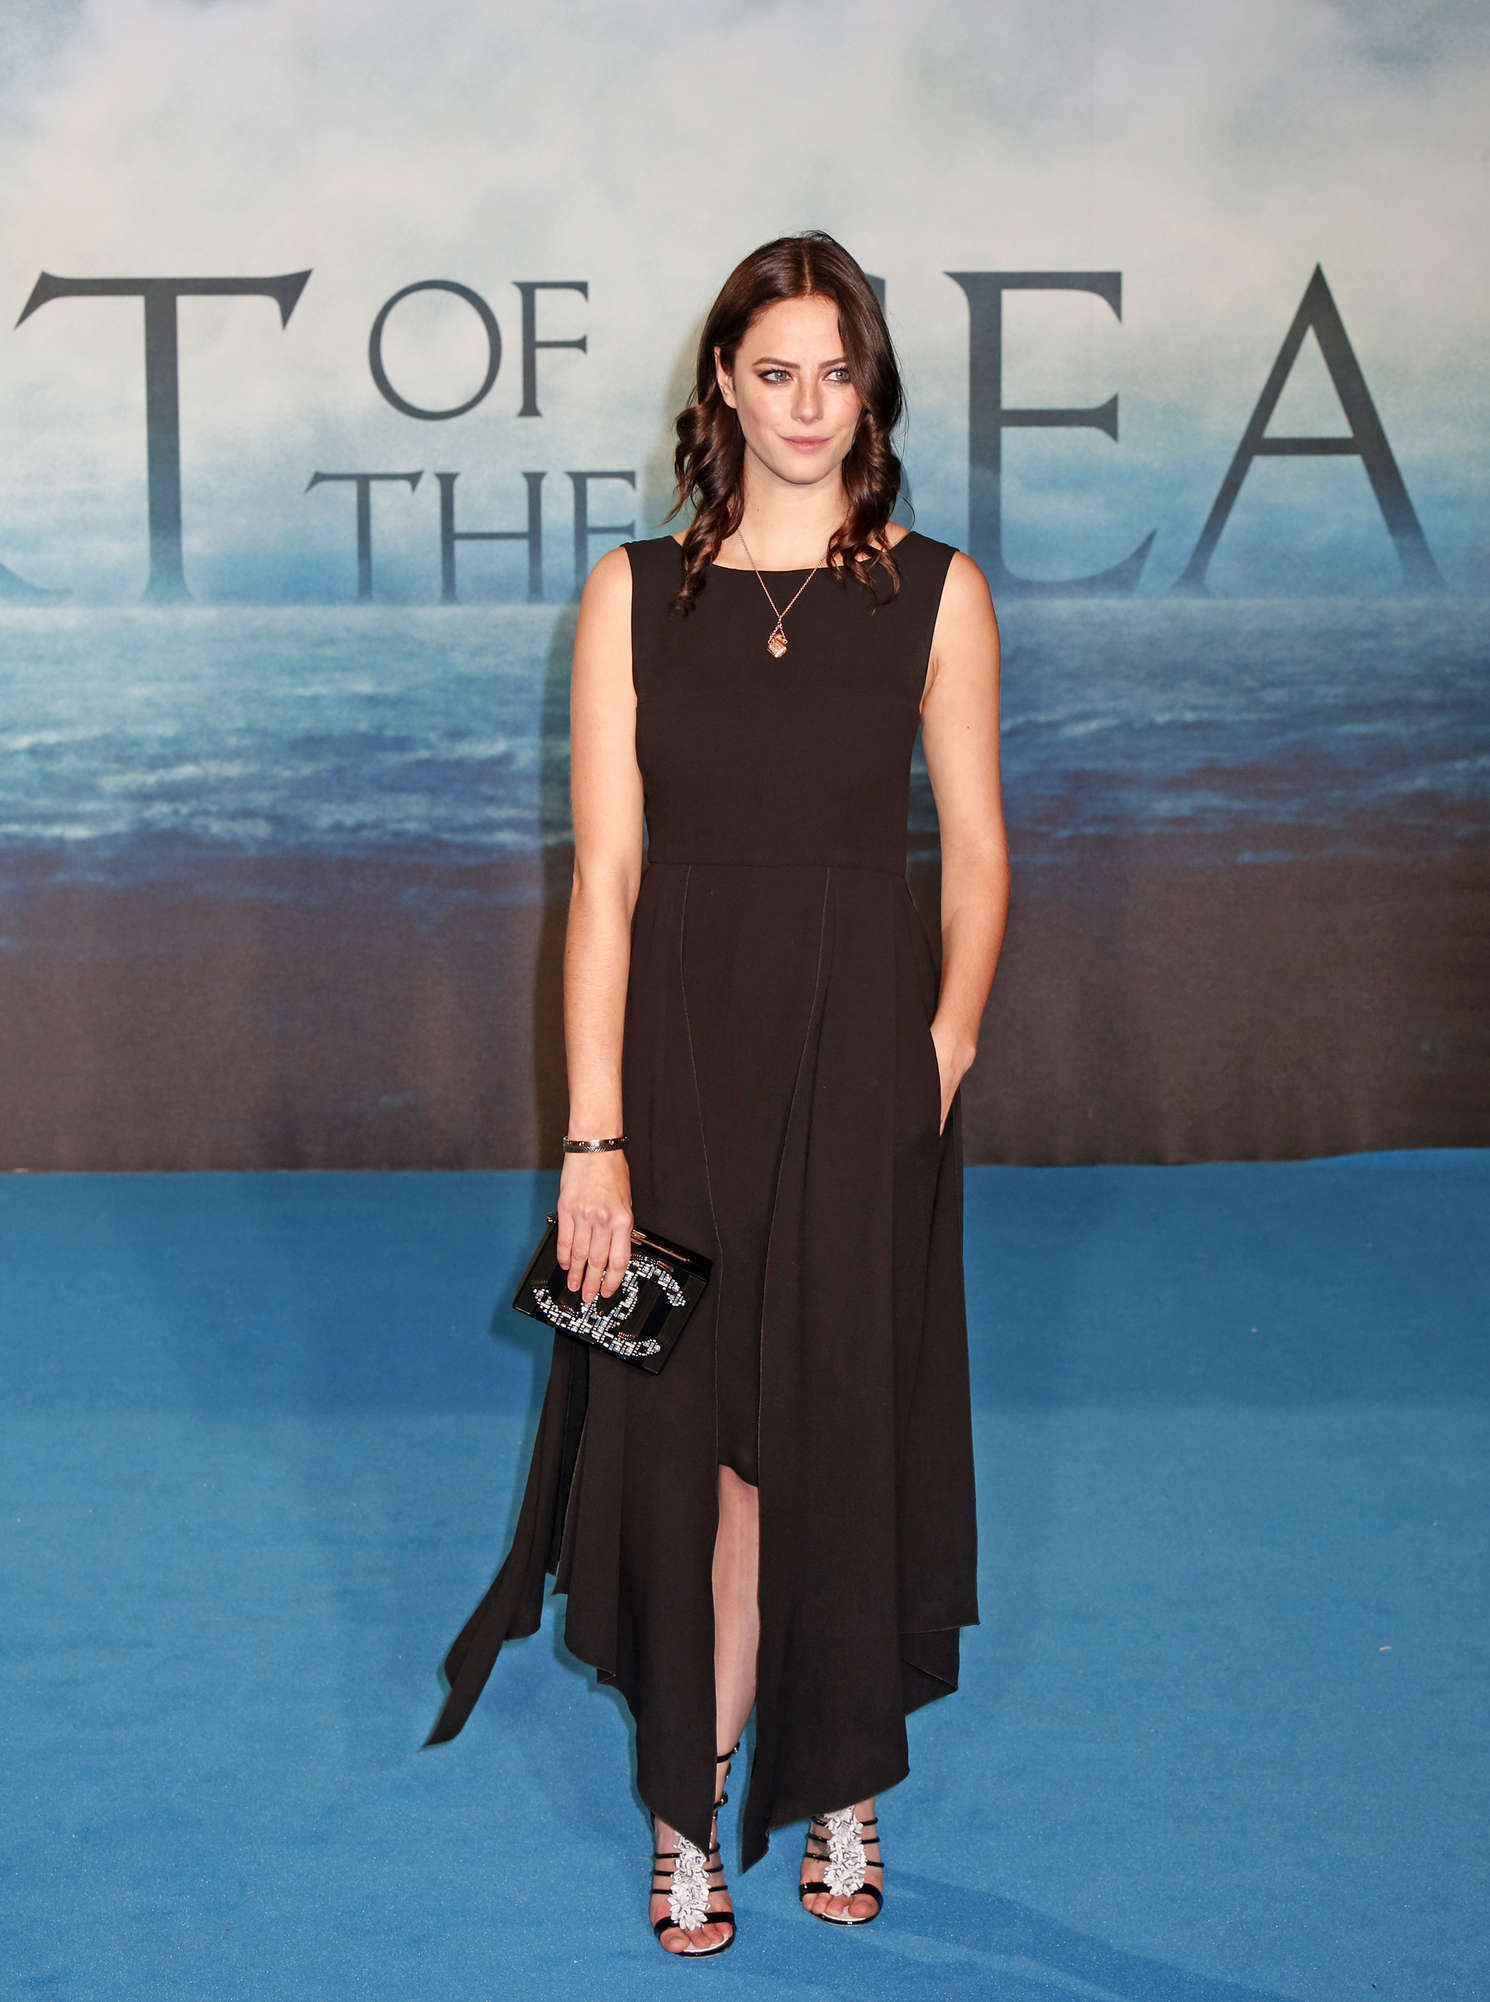 Kaya Scodelario In The Heart Of The Sea Premiere in London